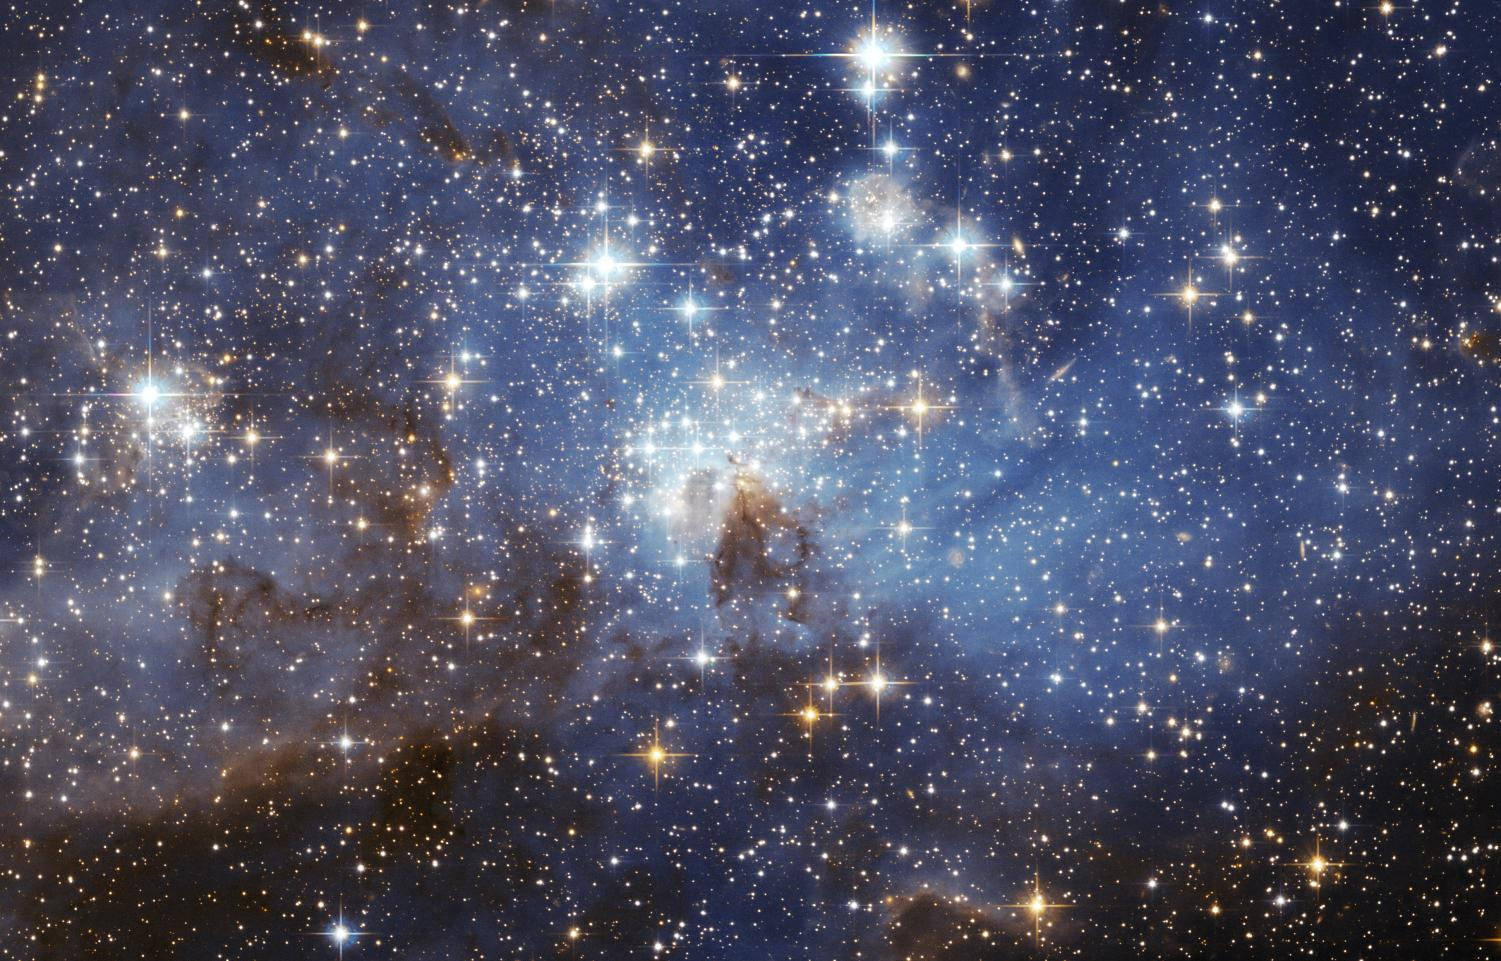 An image of stardust in outer space